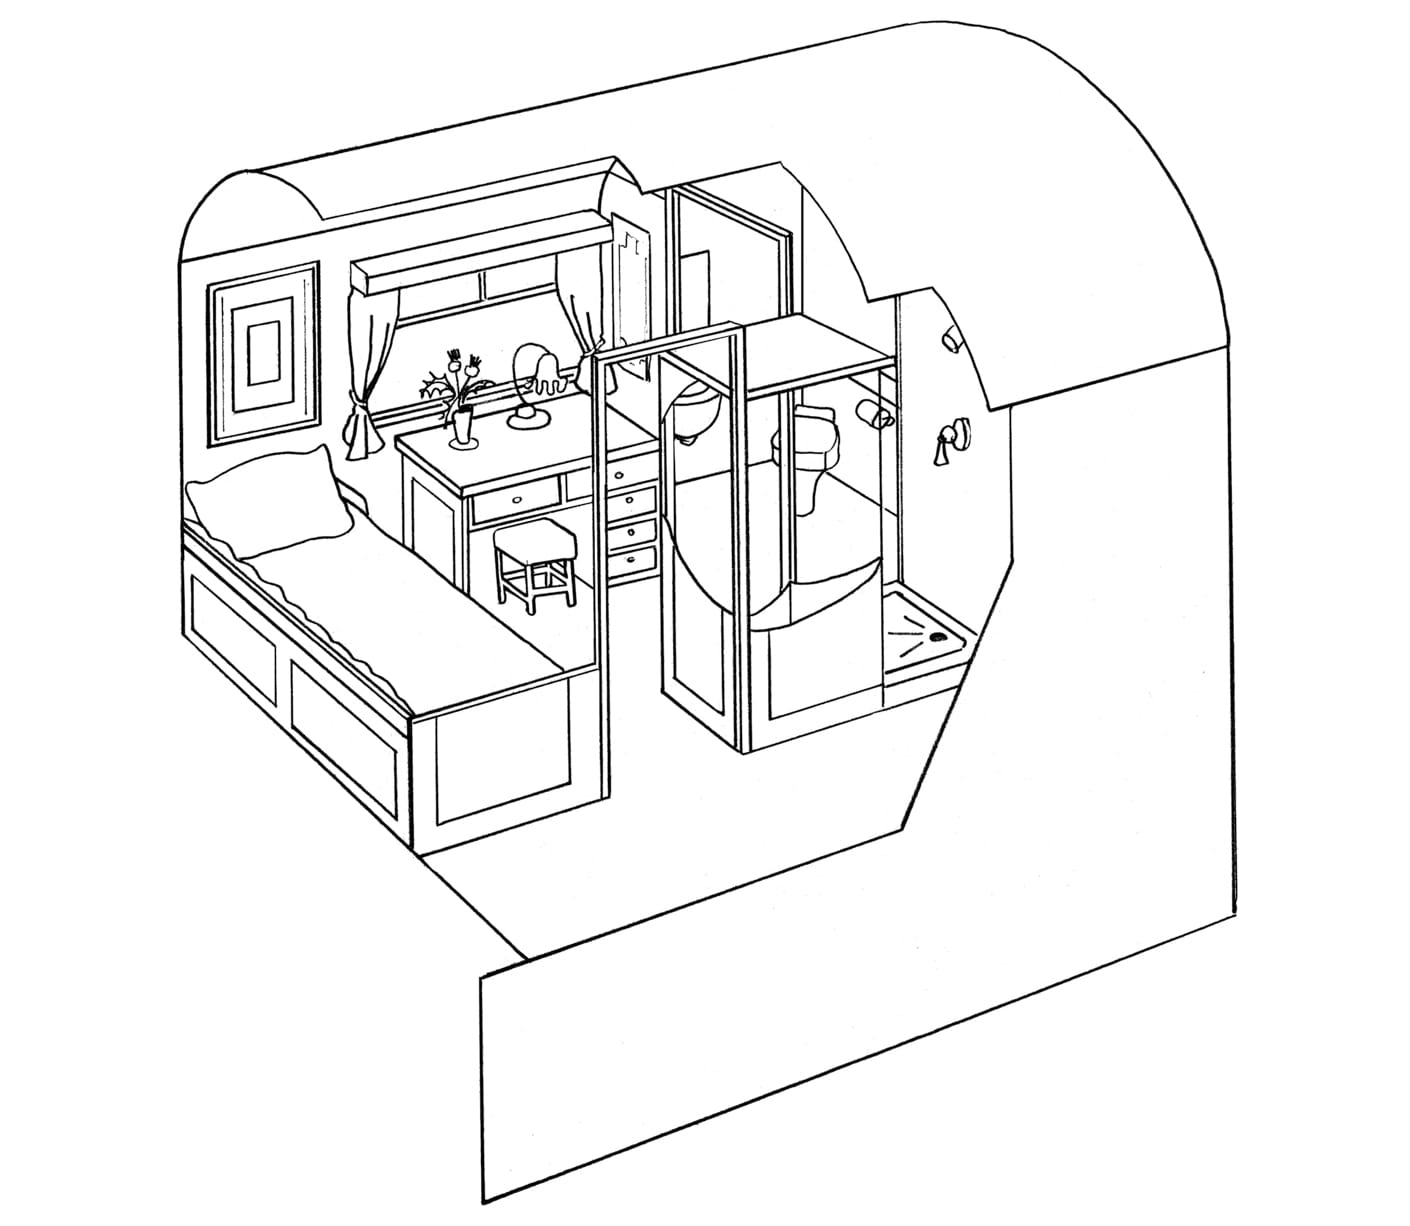 Single cabin diagram of the Belmond Royal Scotsman train